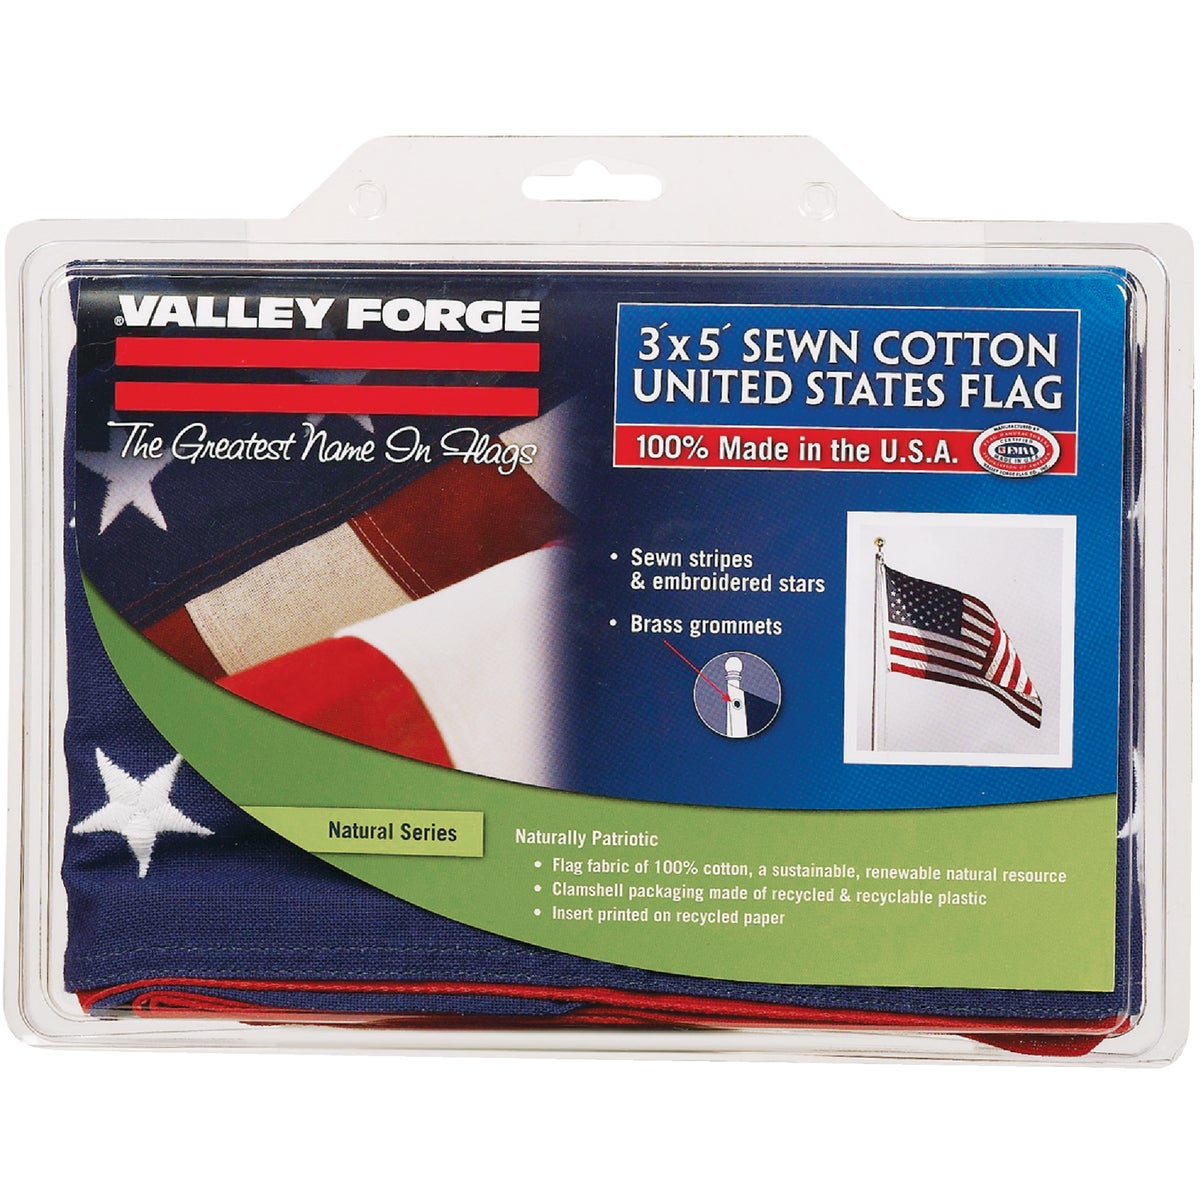 Valley Forge 3X5 COTTON USA FLAG USB3